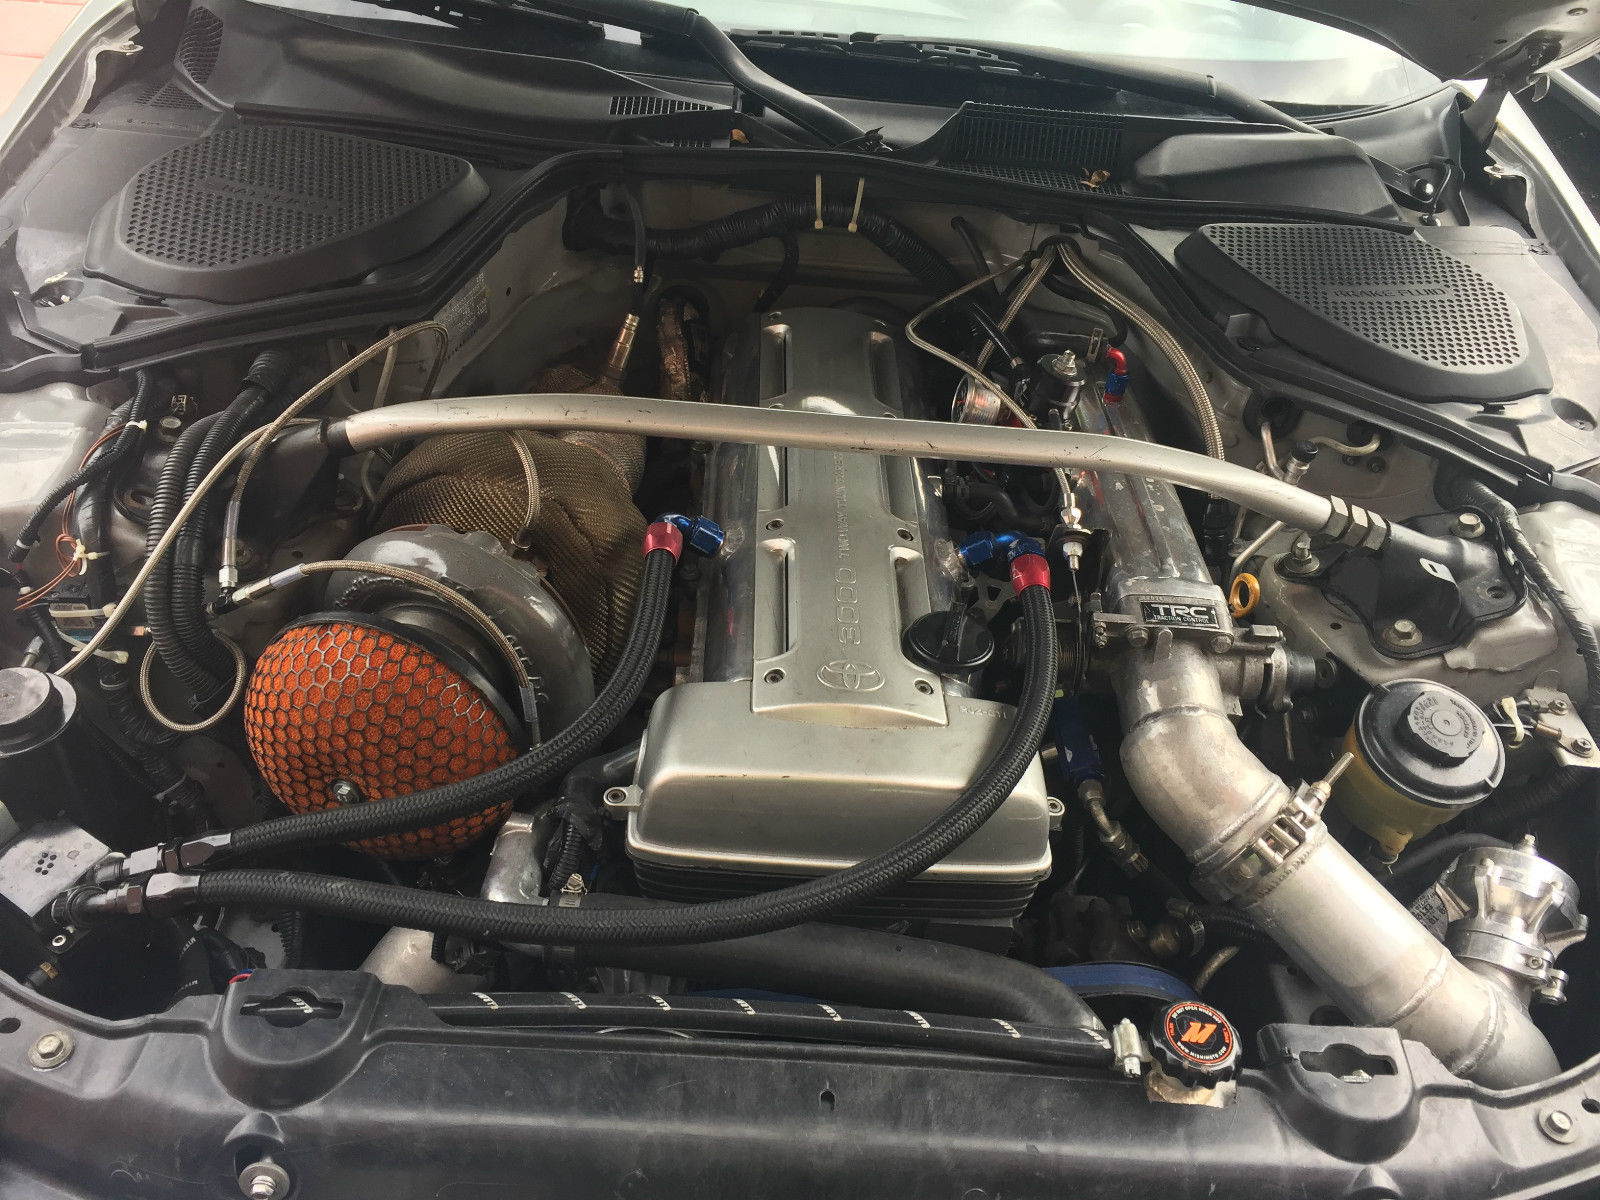 2jz 350z Wiring Harness 23 Diagram Images Diagrams Engine Swap Depot 2007 Nissan With A Gte Inline Six 04 For Sale